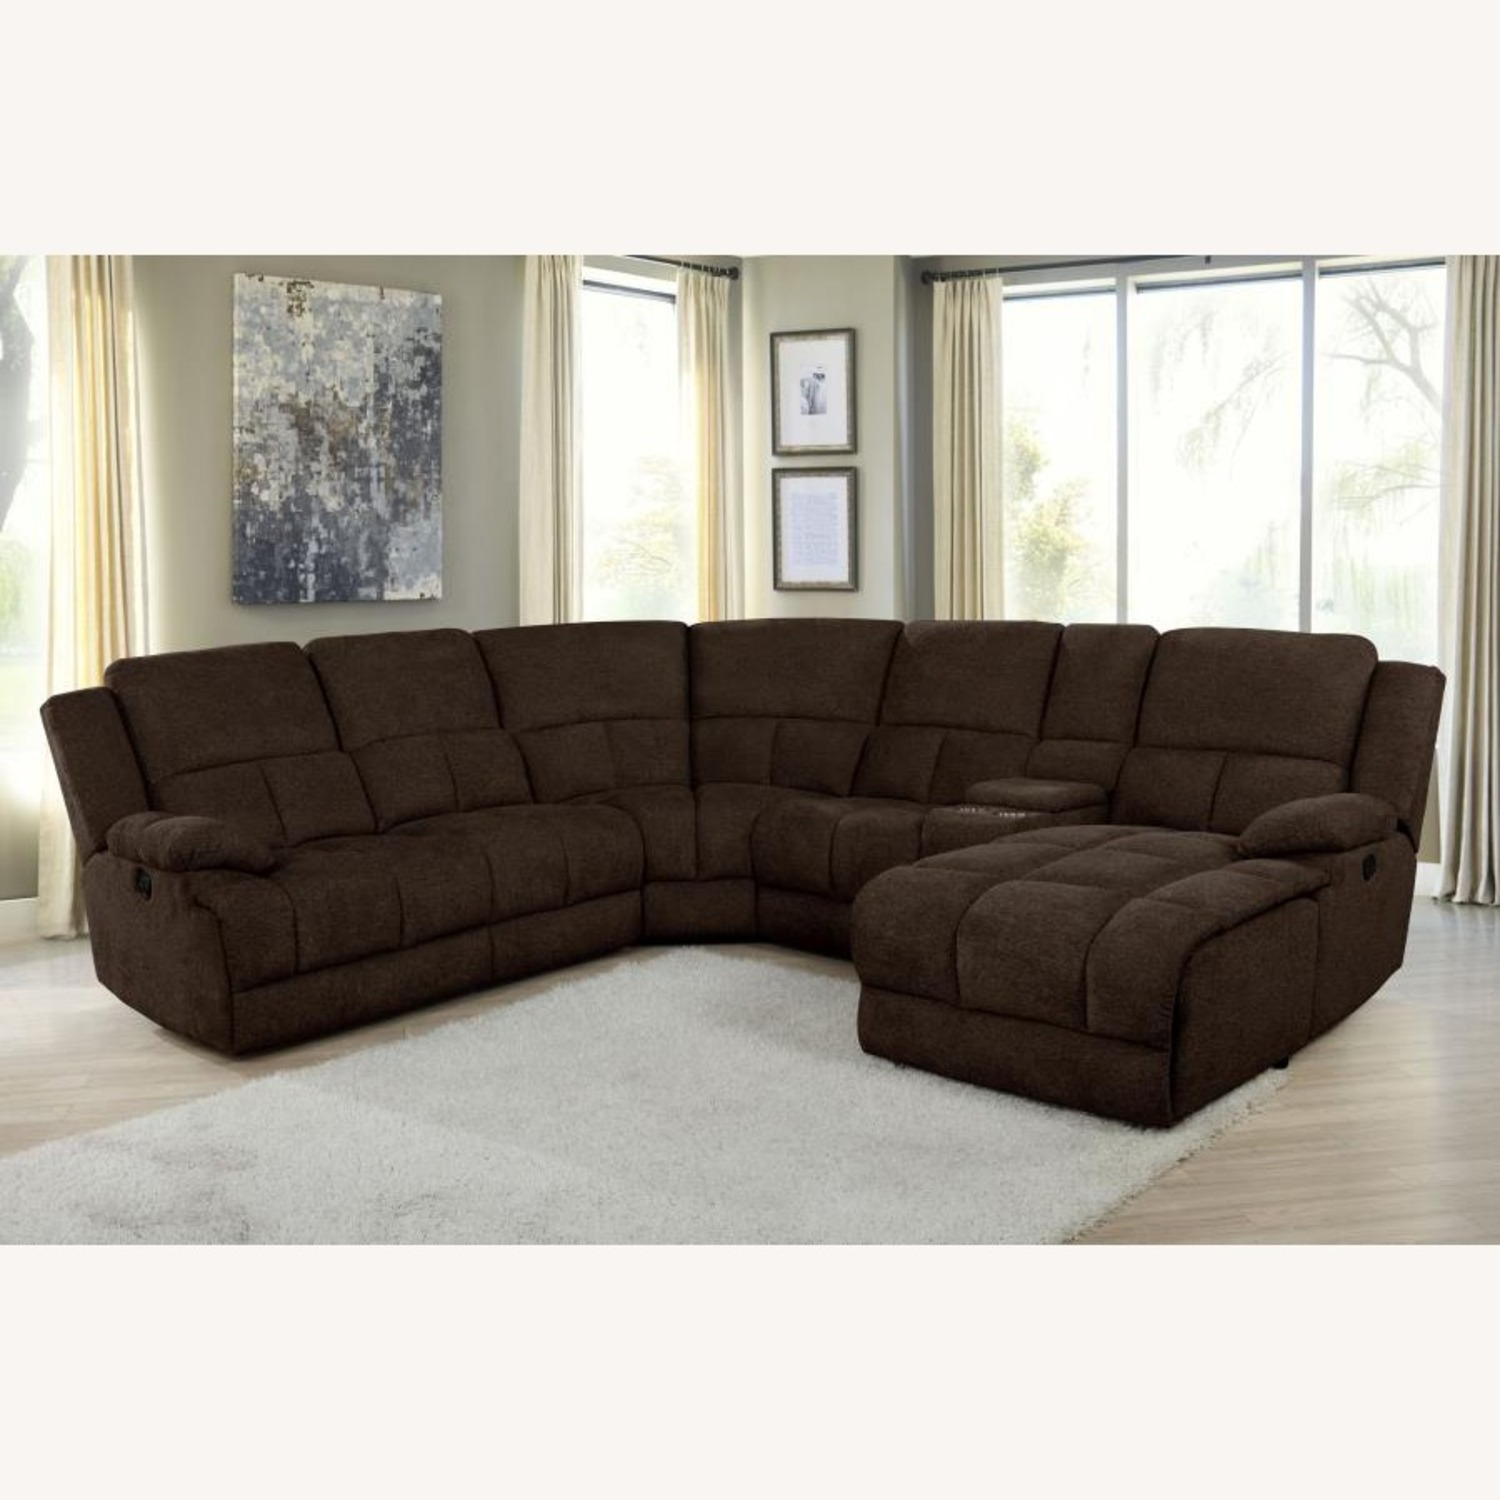 Motion Sectional In Brown Performance Fabric - image-0